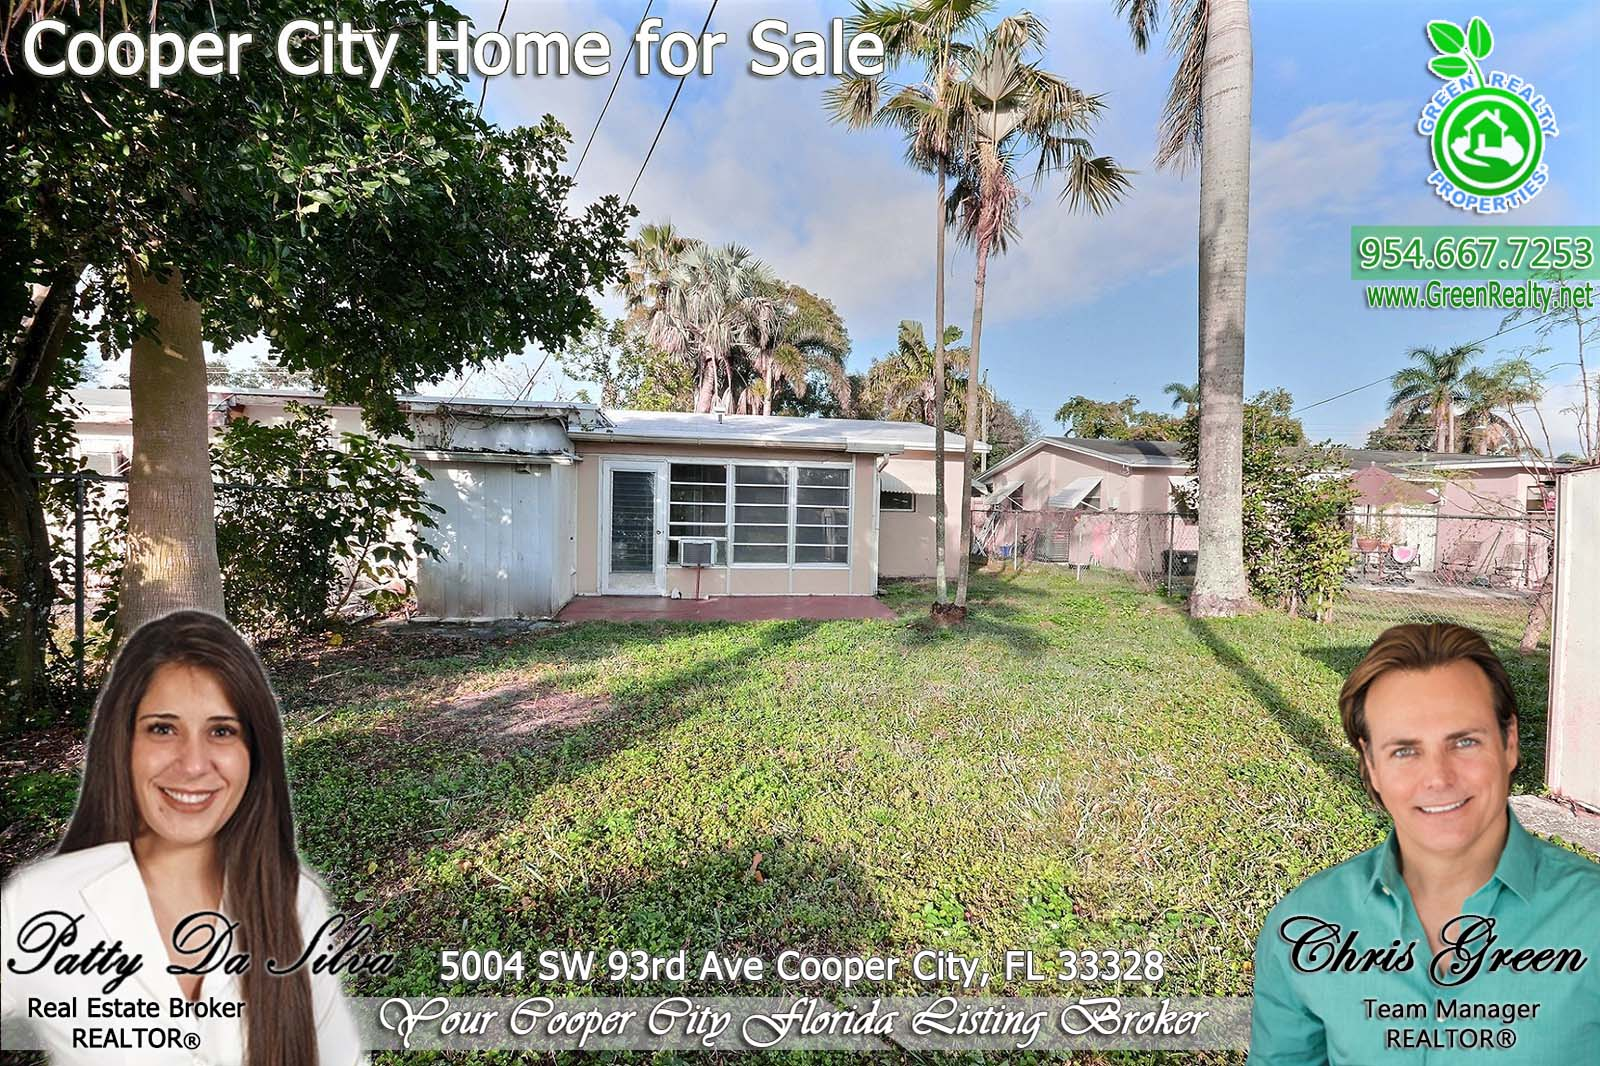 21 Homes For Sale in Cooper City FL (5)